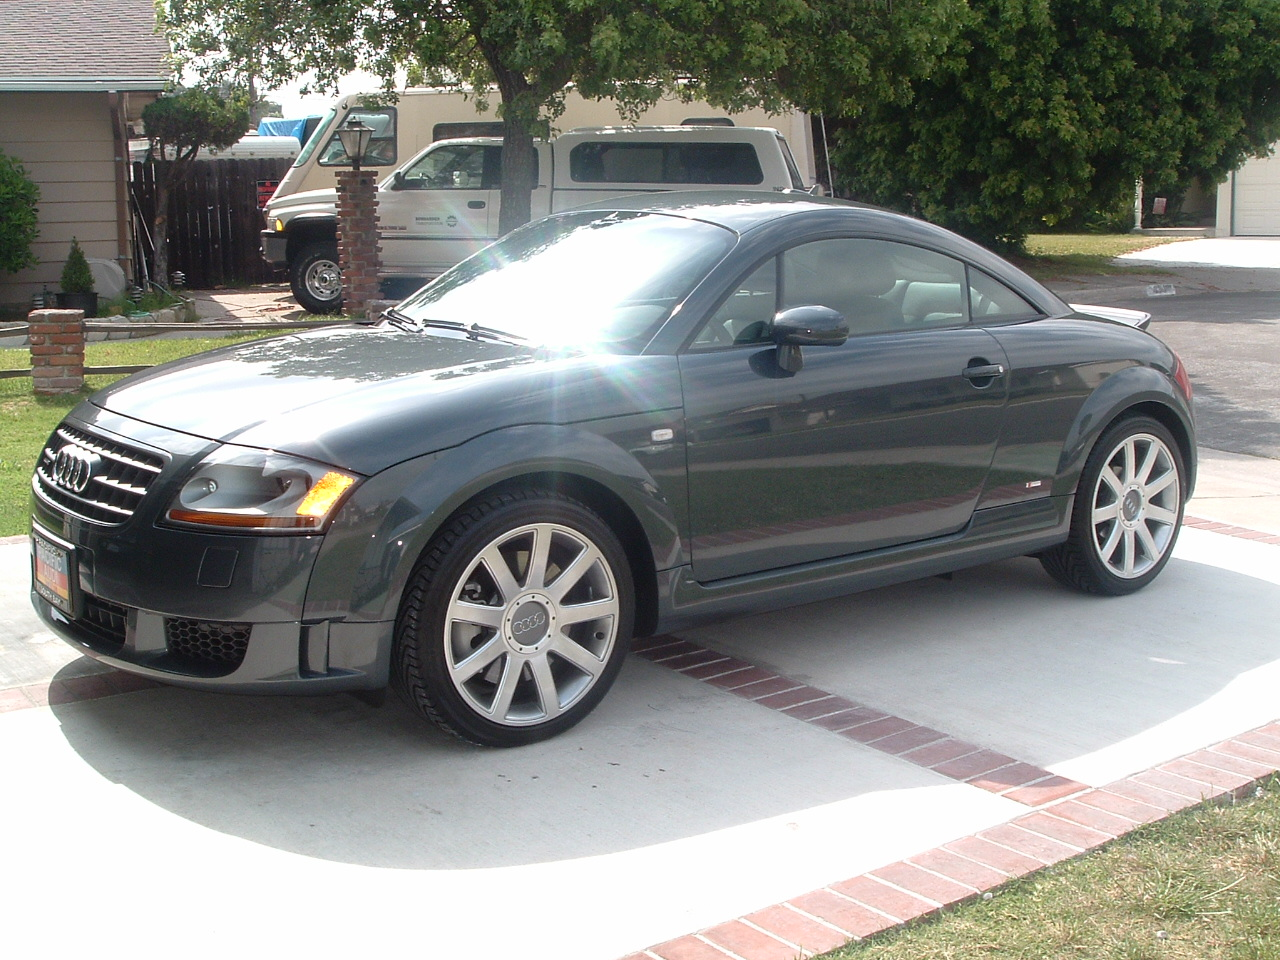 2005 audi tt pictures cargurus. Black Bedroom Furniture Sets. Home Design Ideas